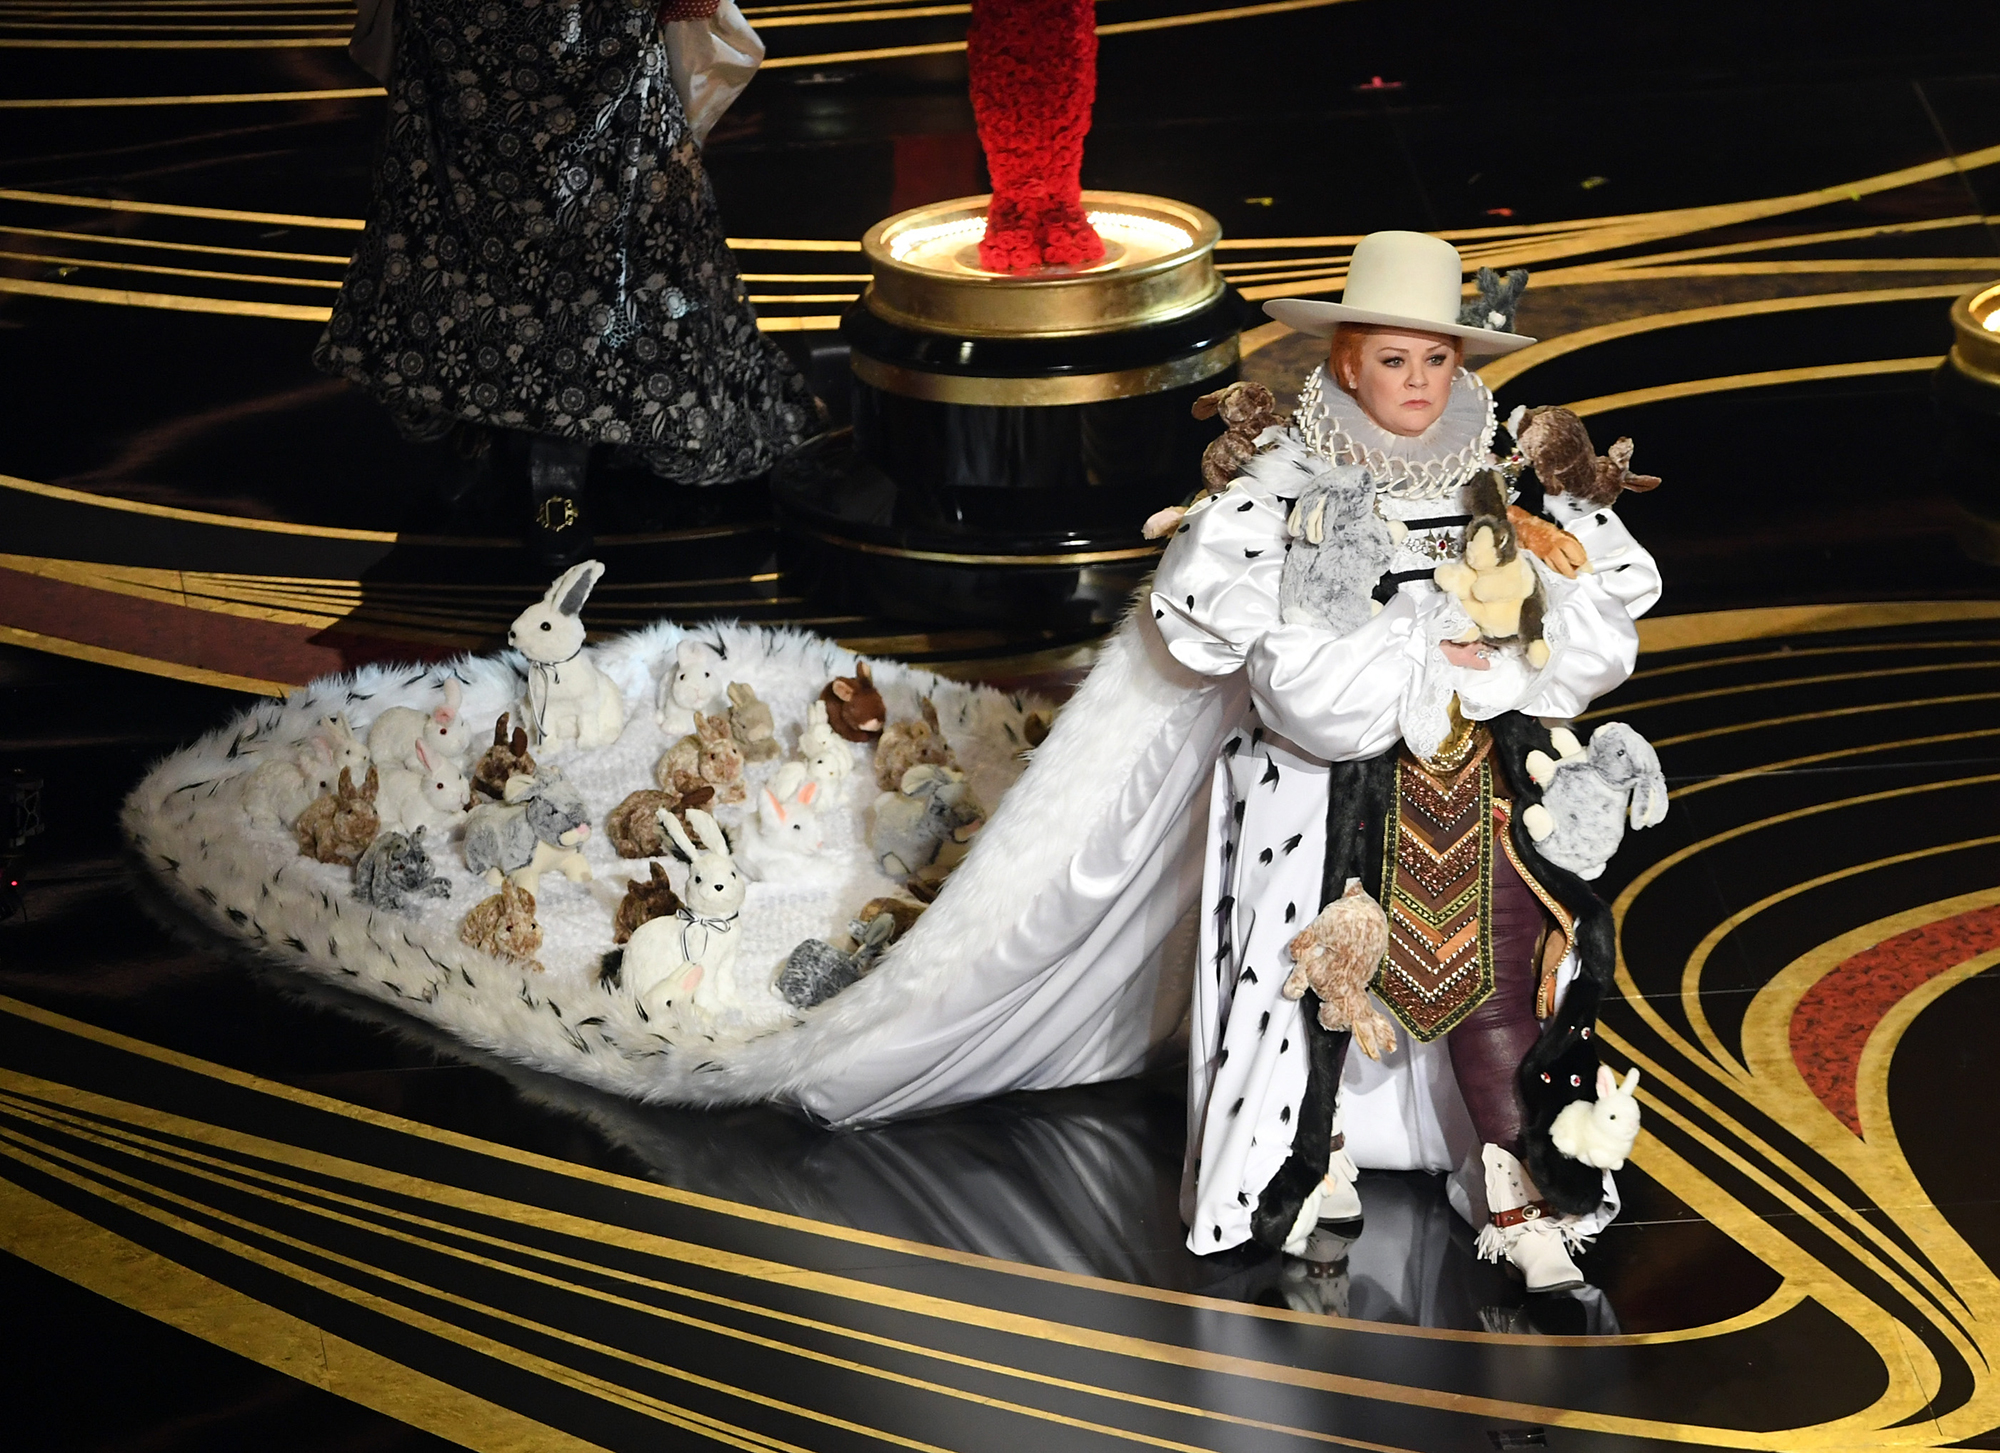 Oscars 2019 Melissa Mccarthy Wears Dress Covered In Bunnies People Com